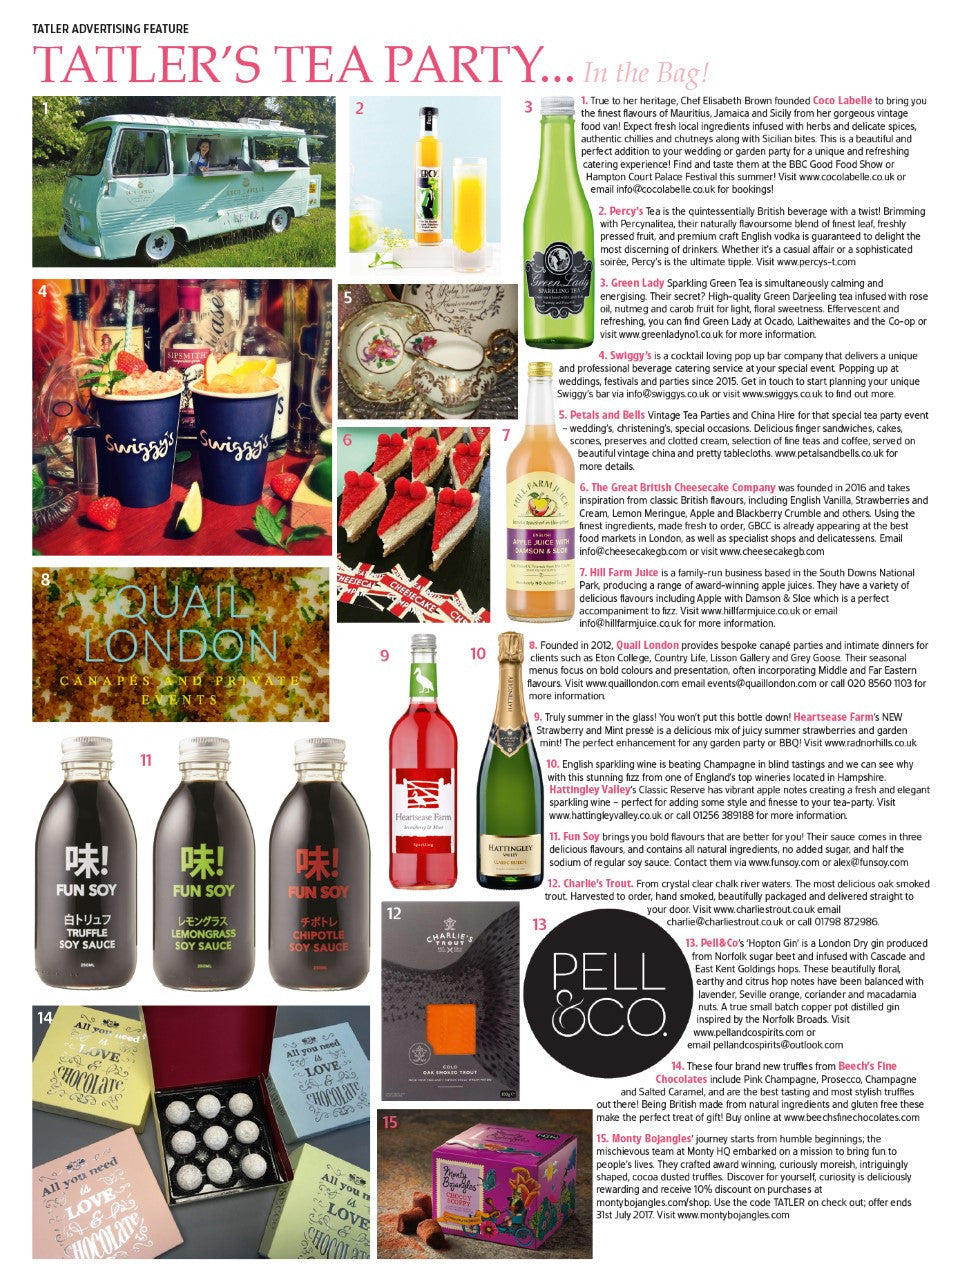 Check out Fun Soy in this month's Tatler!